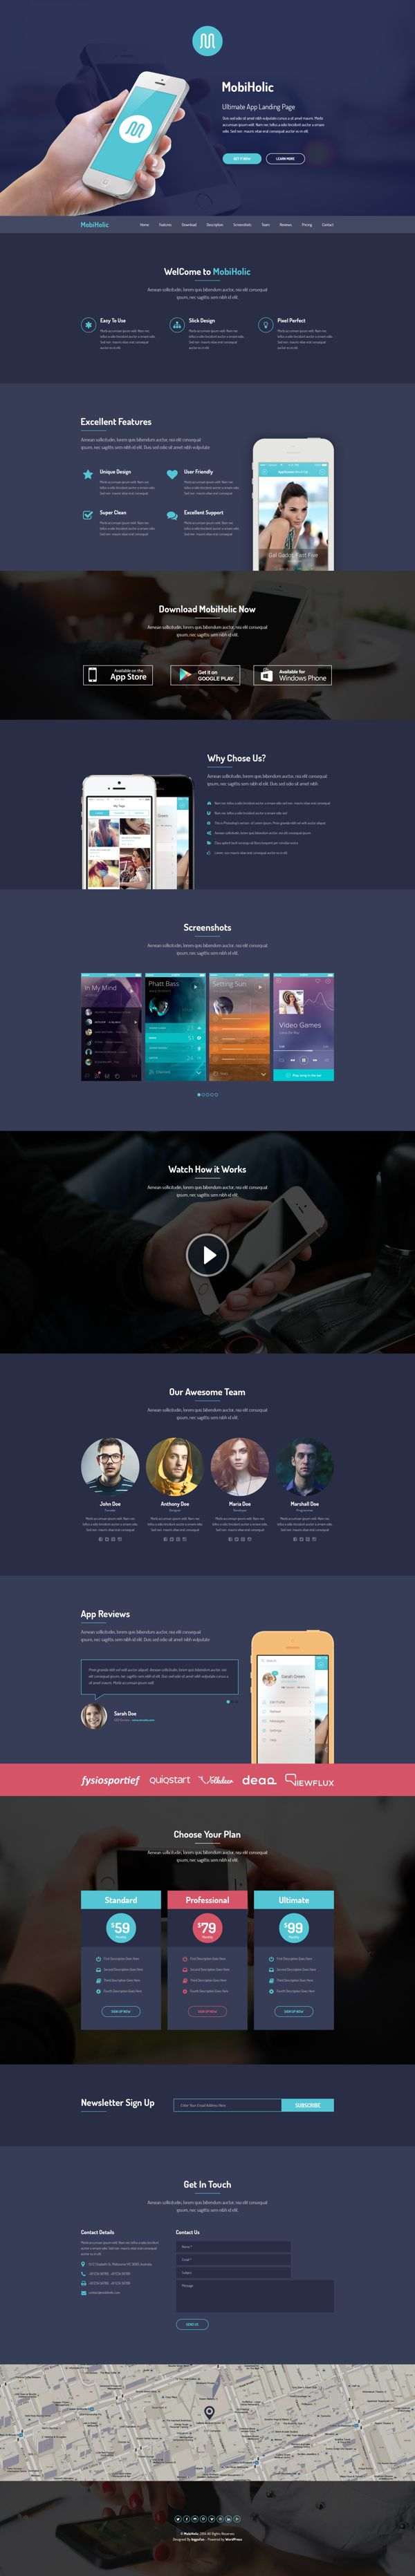 MobiHolic - Ultimate App Landing Page PSD Template by Akbar Hossain ...